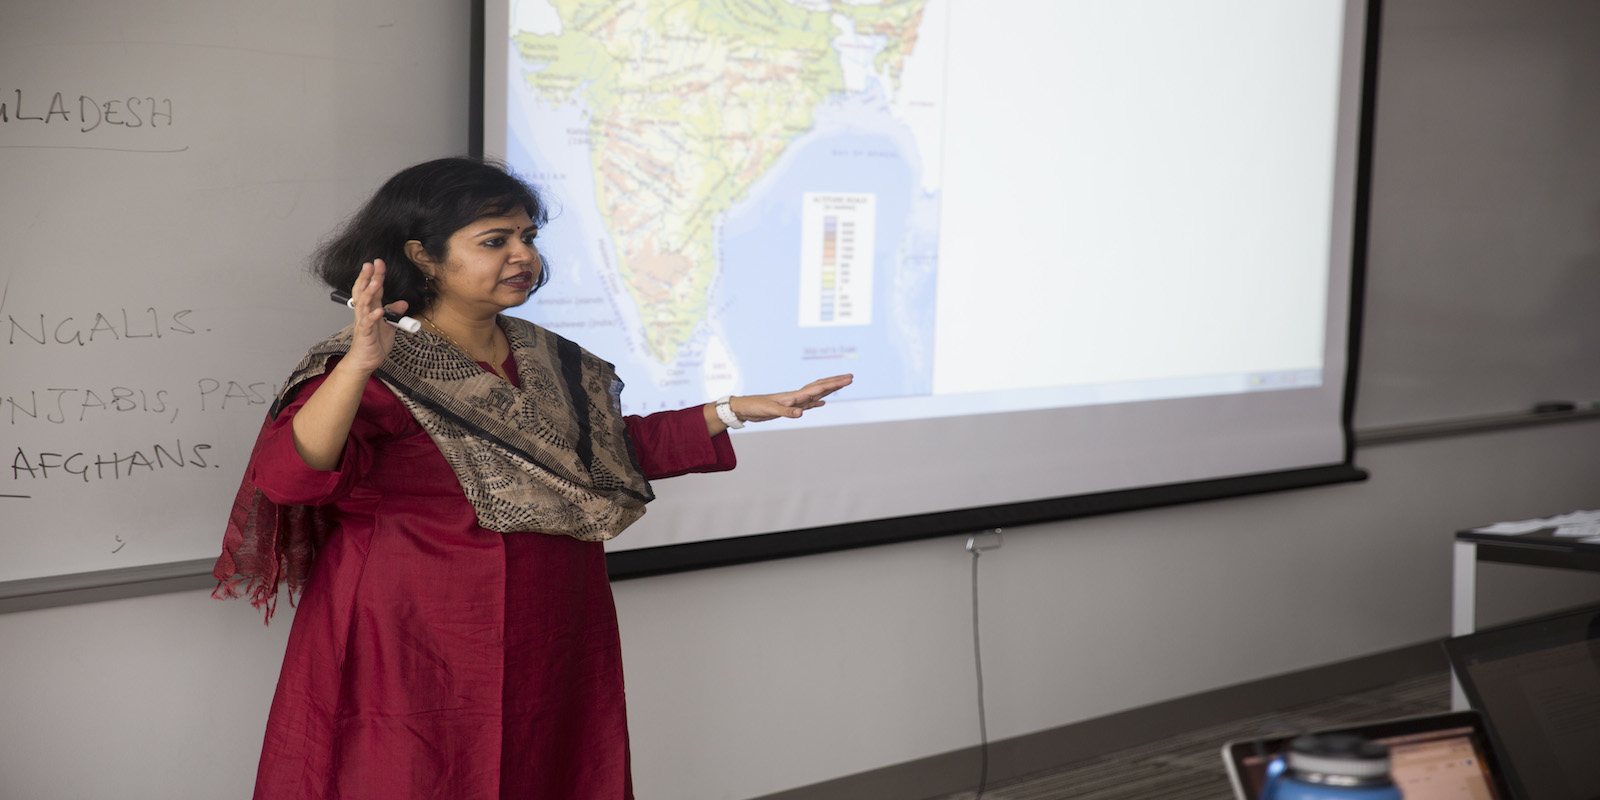 Professor Sulakshana Sen of Symbiosis University gave lectures to Global Asian Studies students.